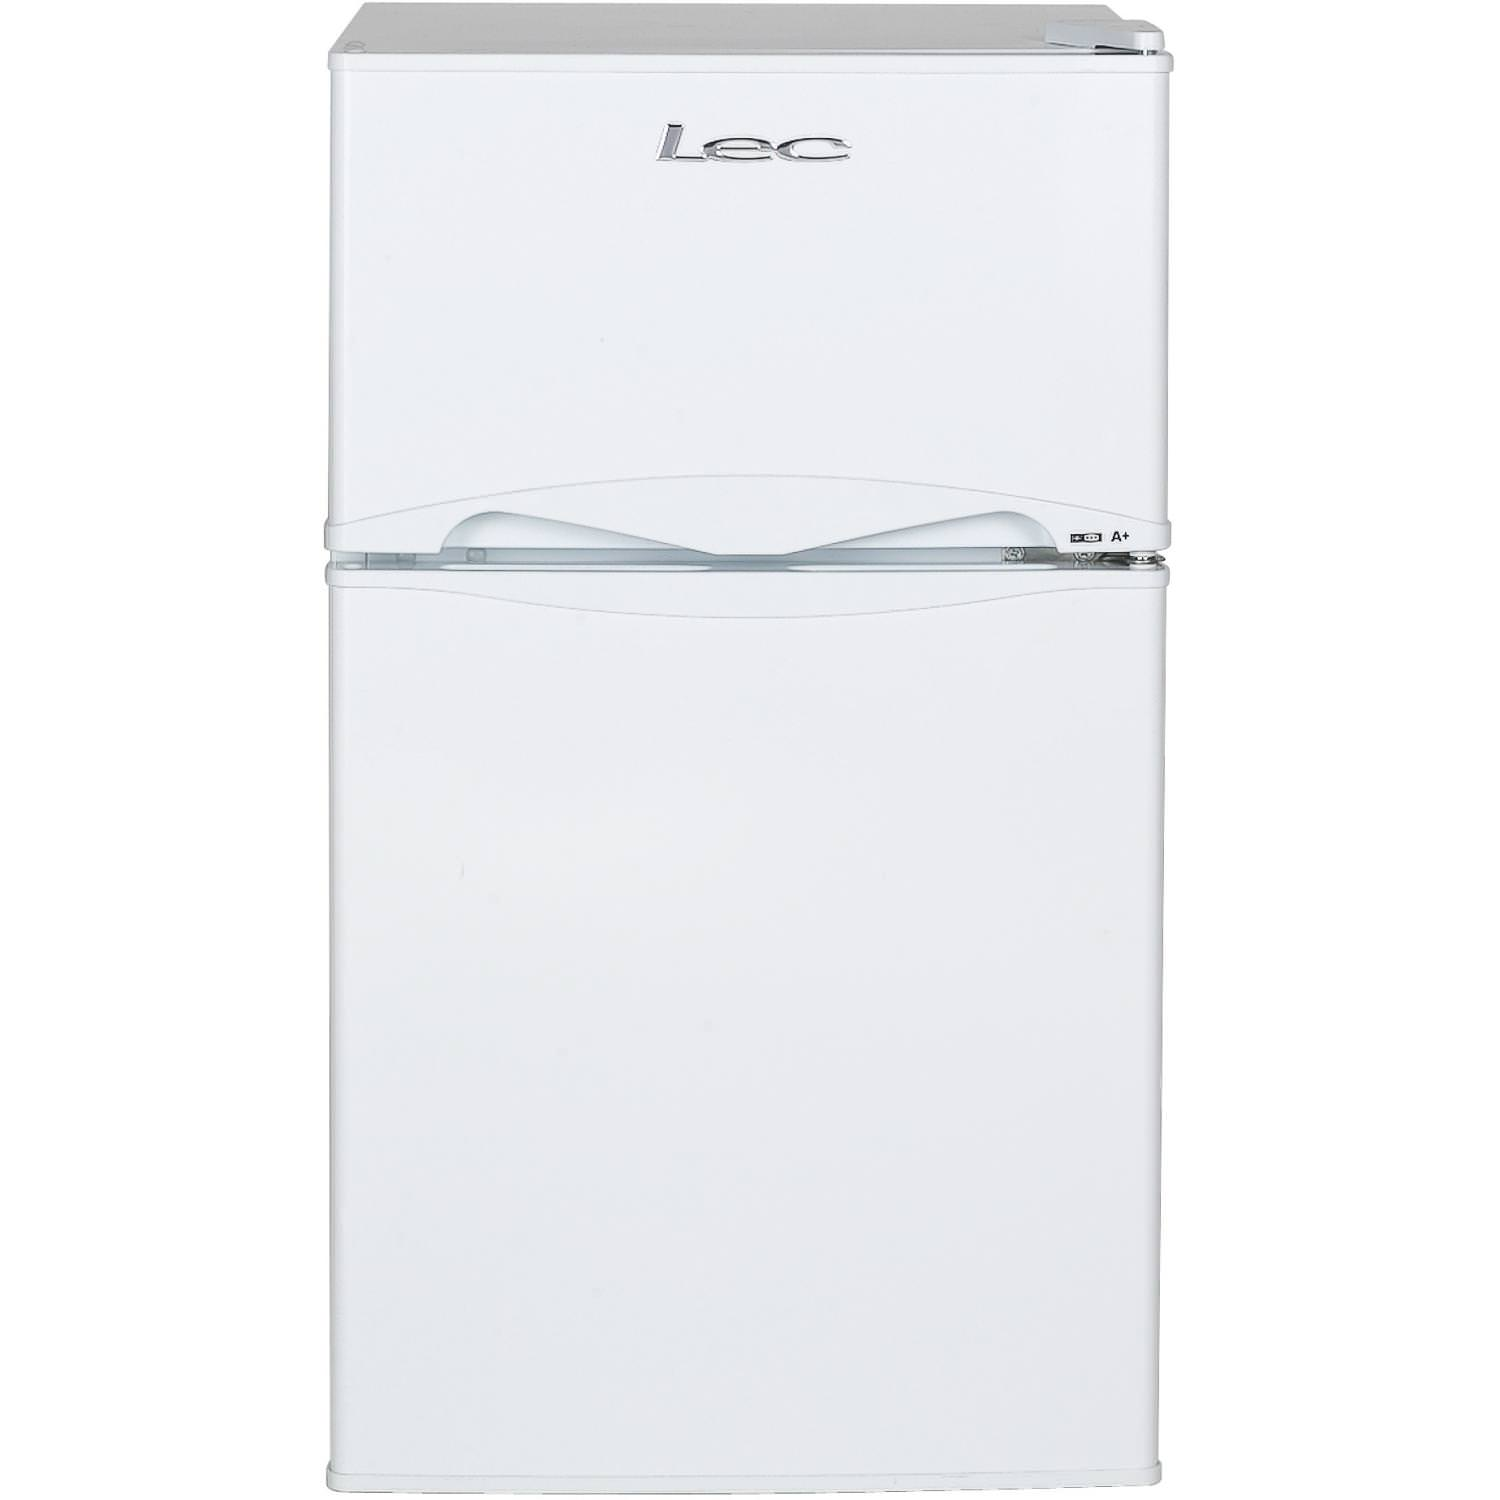 T50084W 87 Litre Auto Defrost Freestanding Under Counter Fridge Freezer